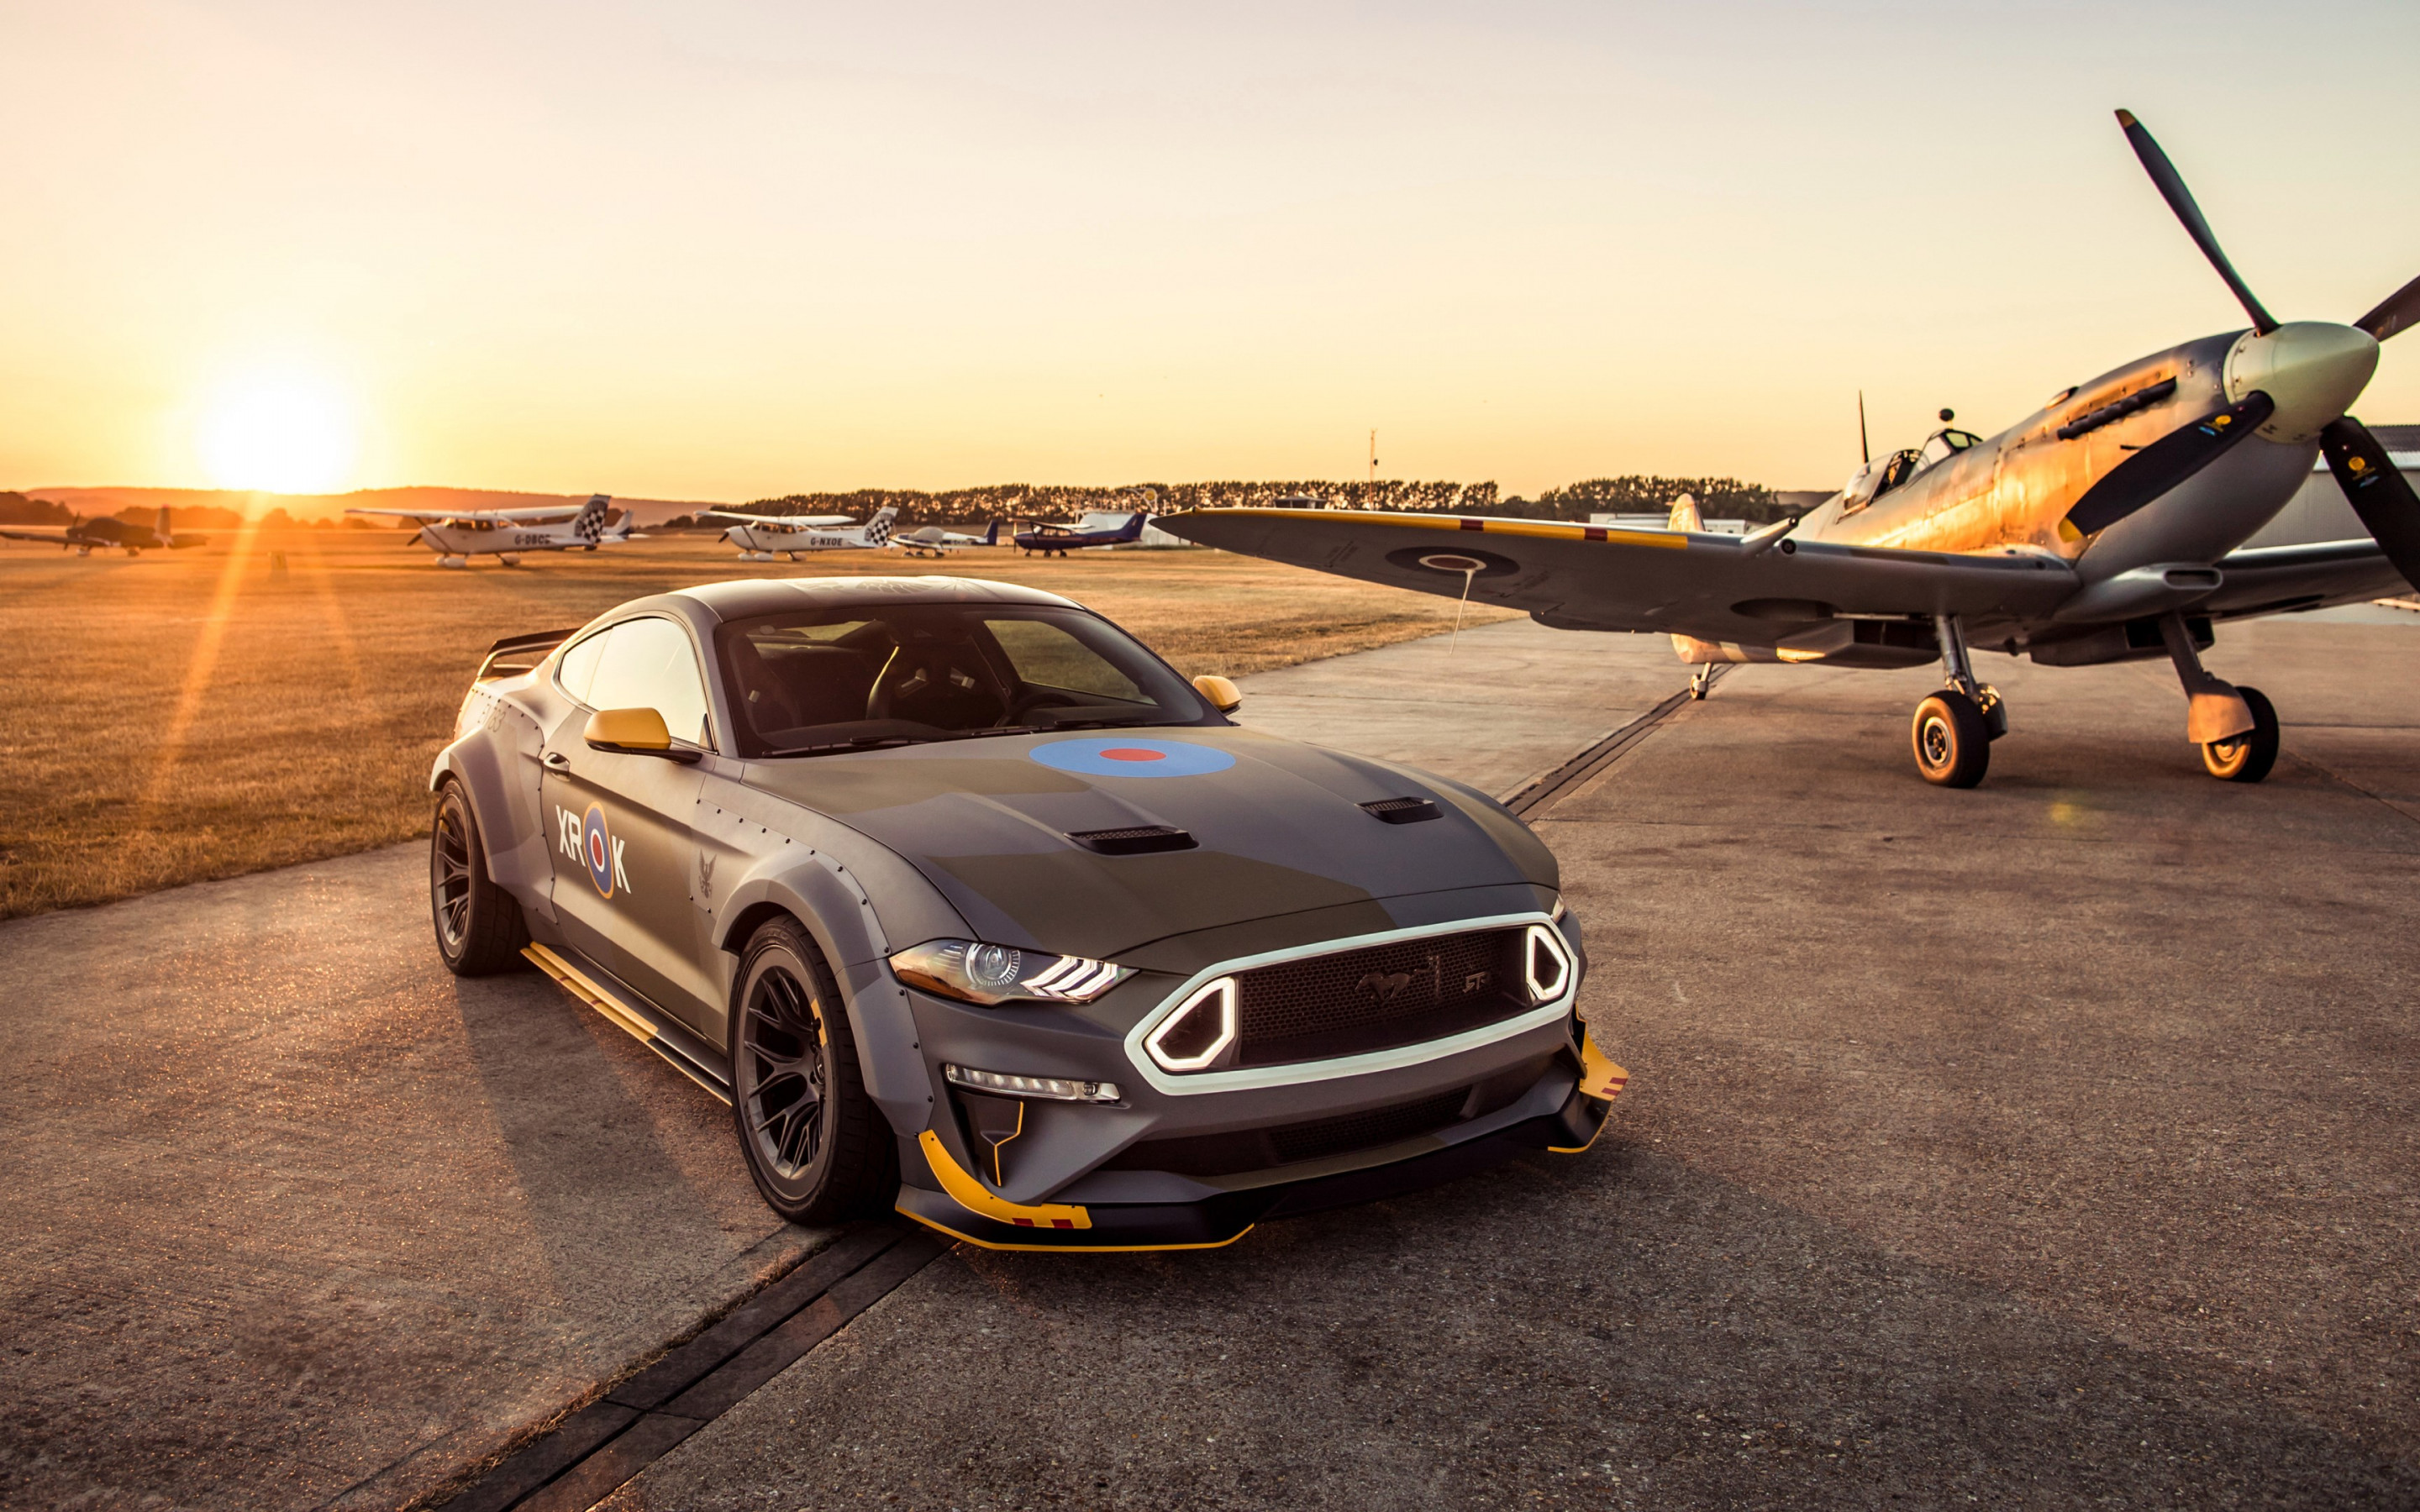 Ford Eagle Squadron Mustang GT wallpaper 2880x1800